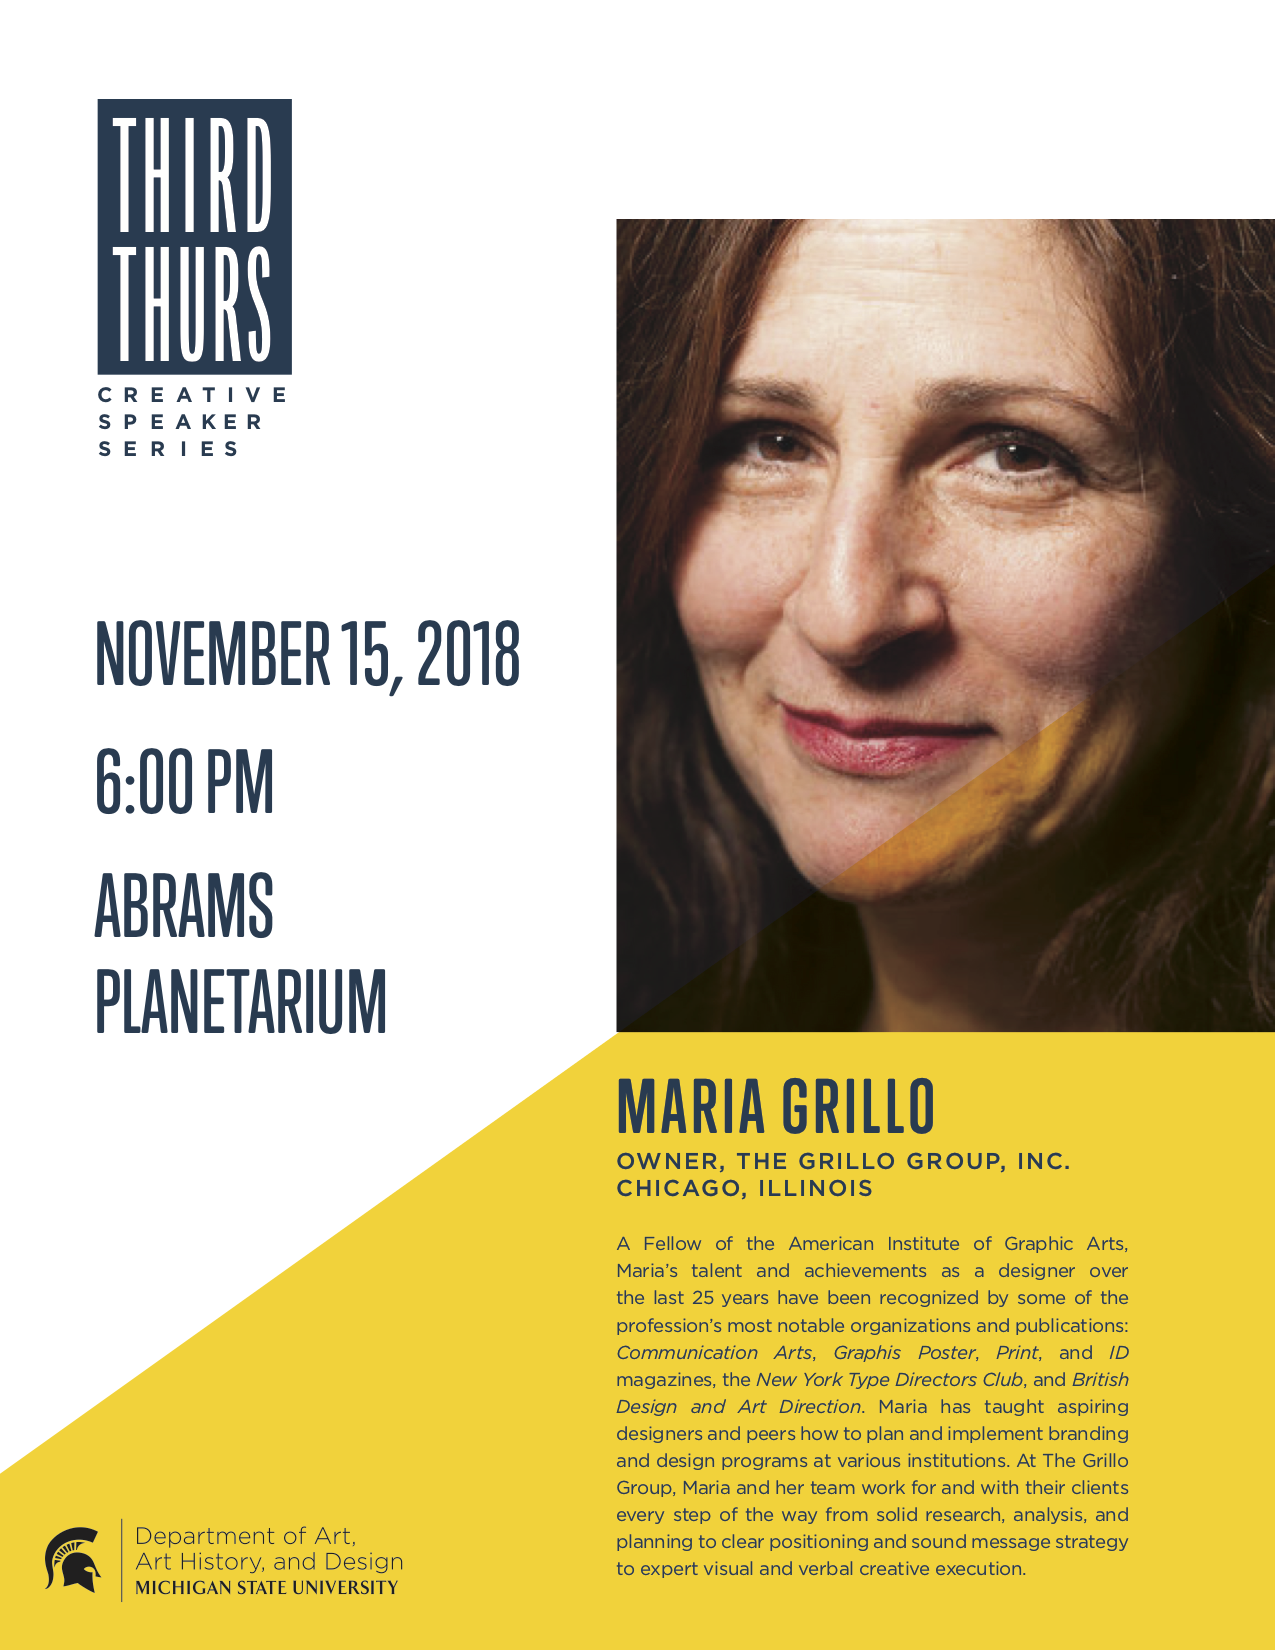 Third Thursday Creative Speaker Series Presents Maria Grillo @ Abrams Planetarium | East Lansing | Michigan | United States